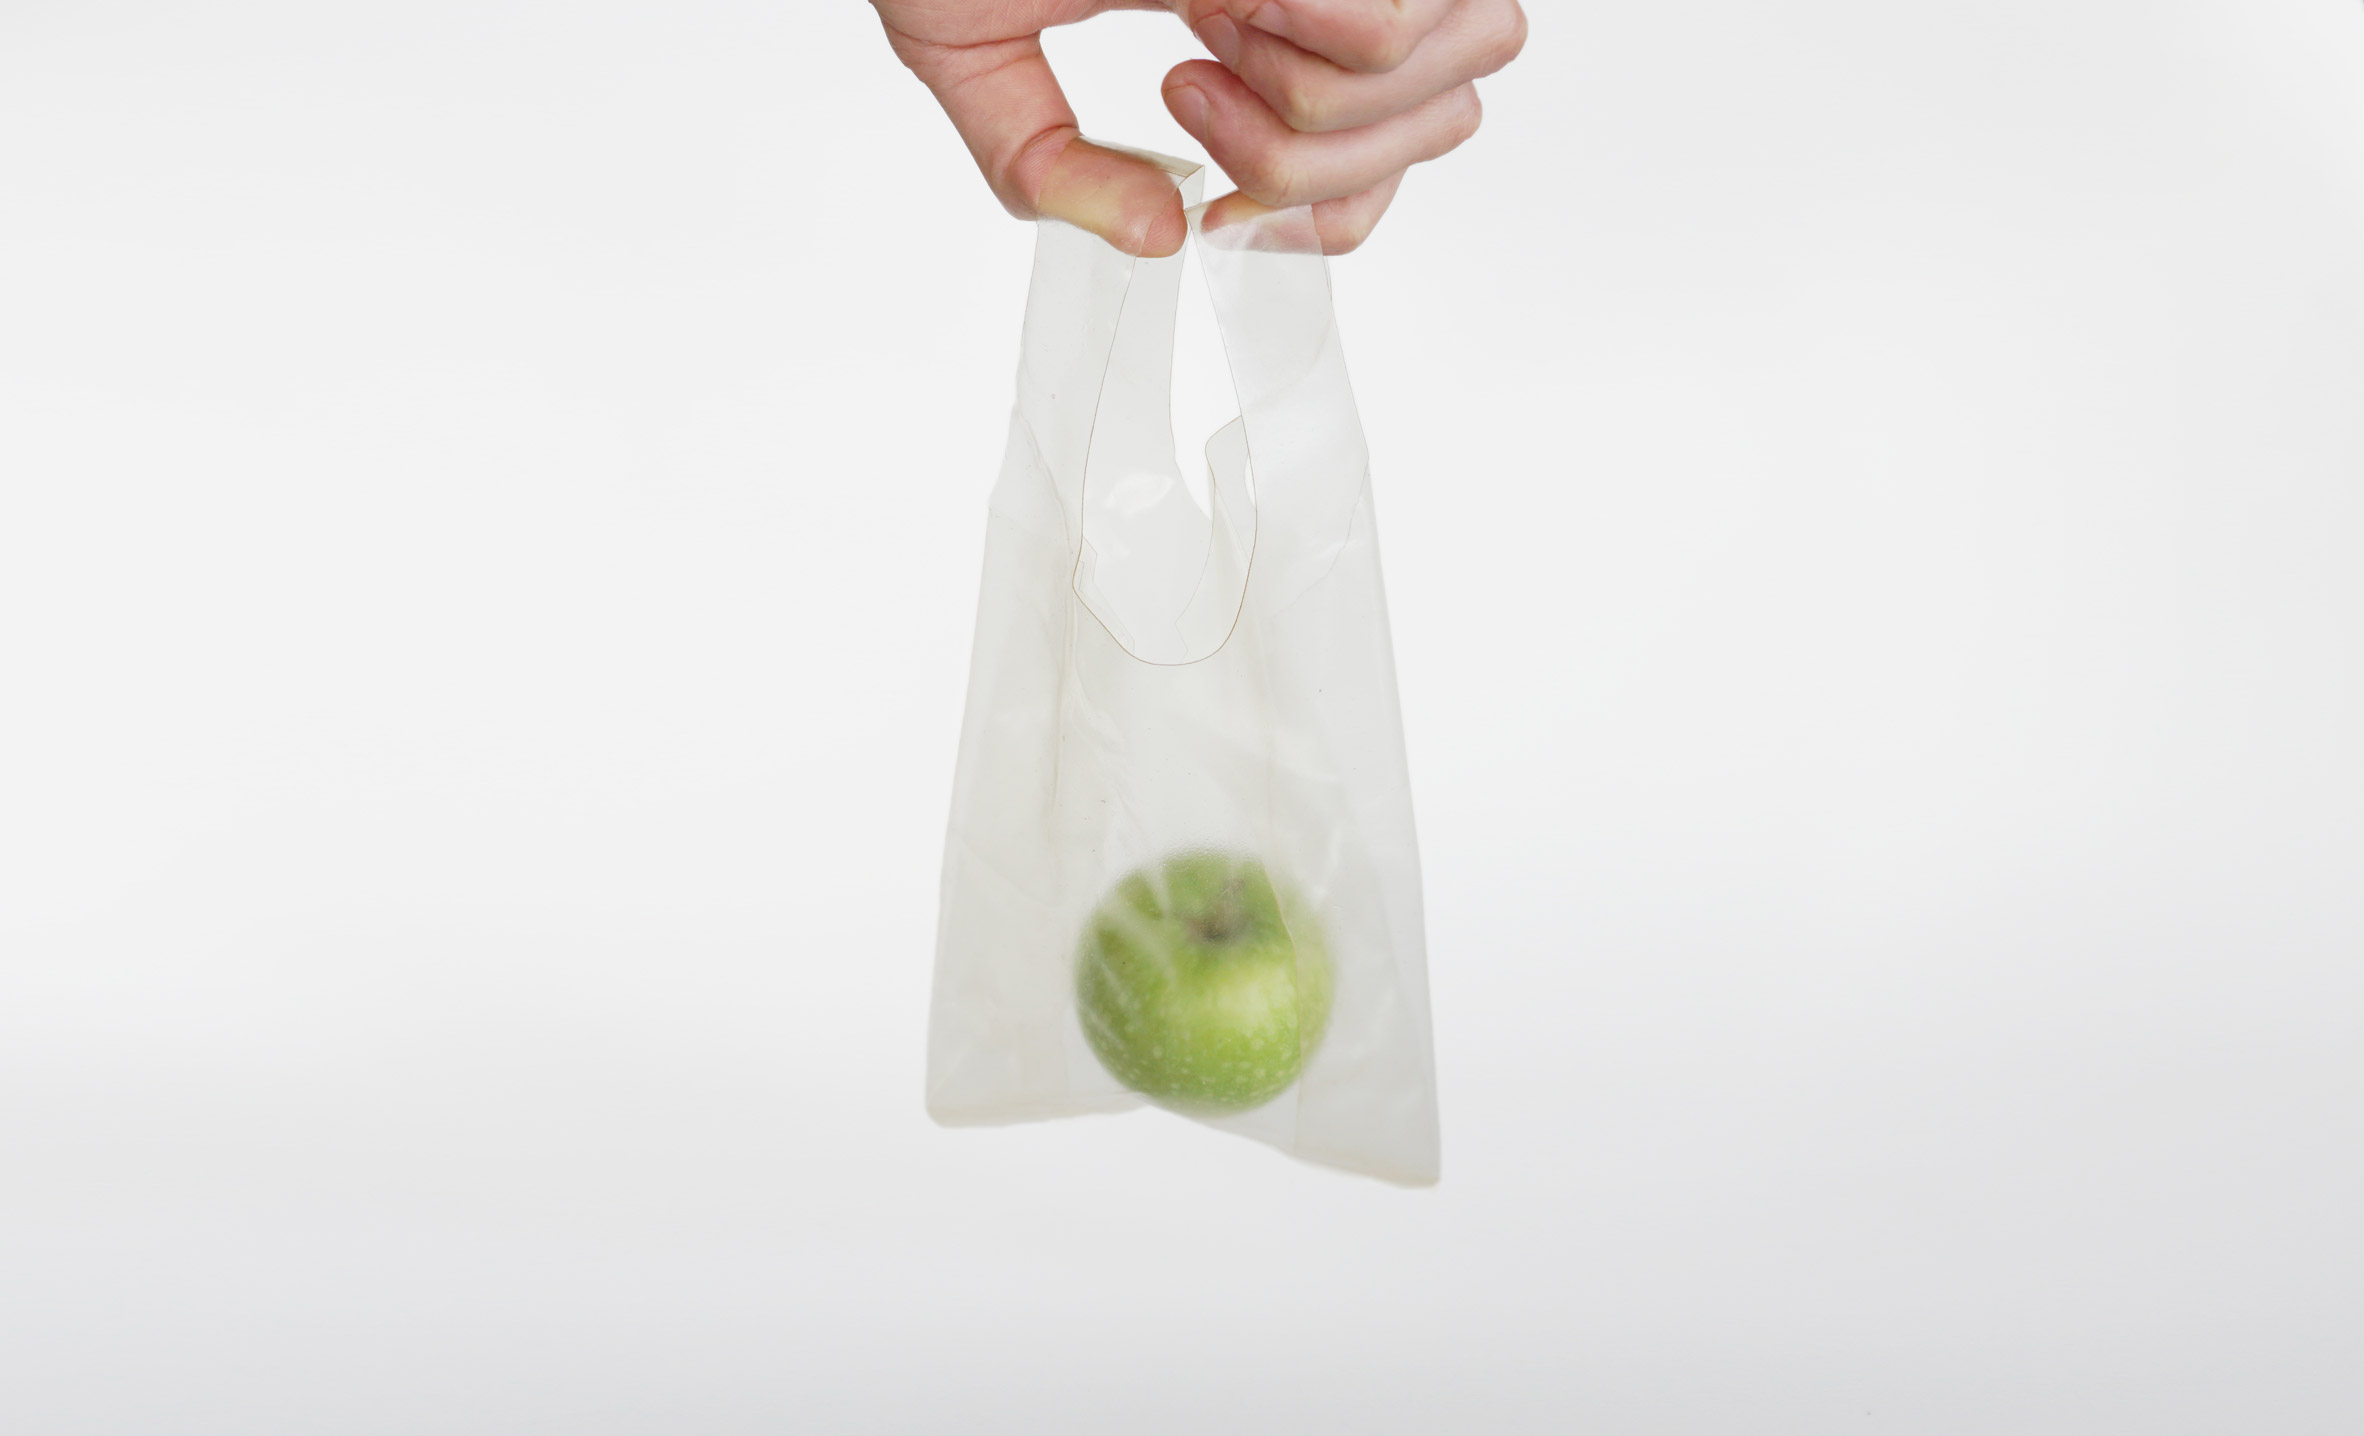 A hand holds a plastic bag containing a green apple.